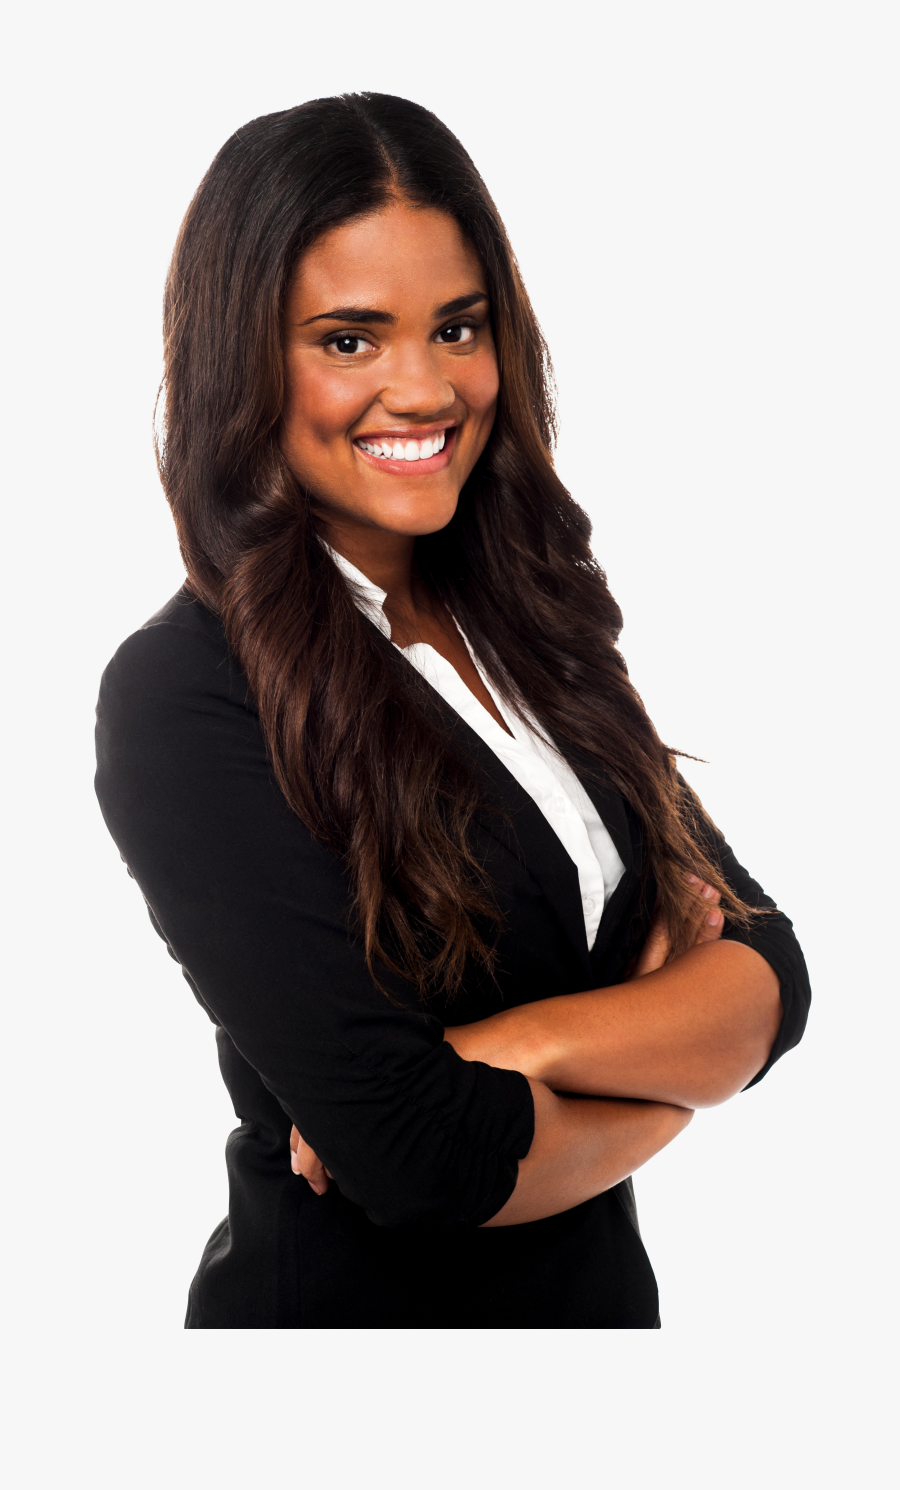 Black Woman Png - Real Estate Agents Business Cards, Transparent Clipart